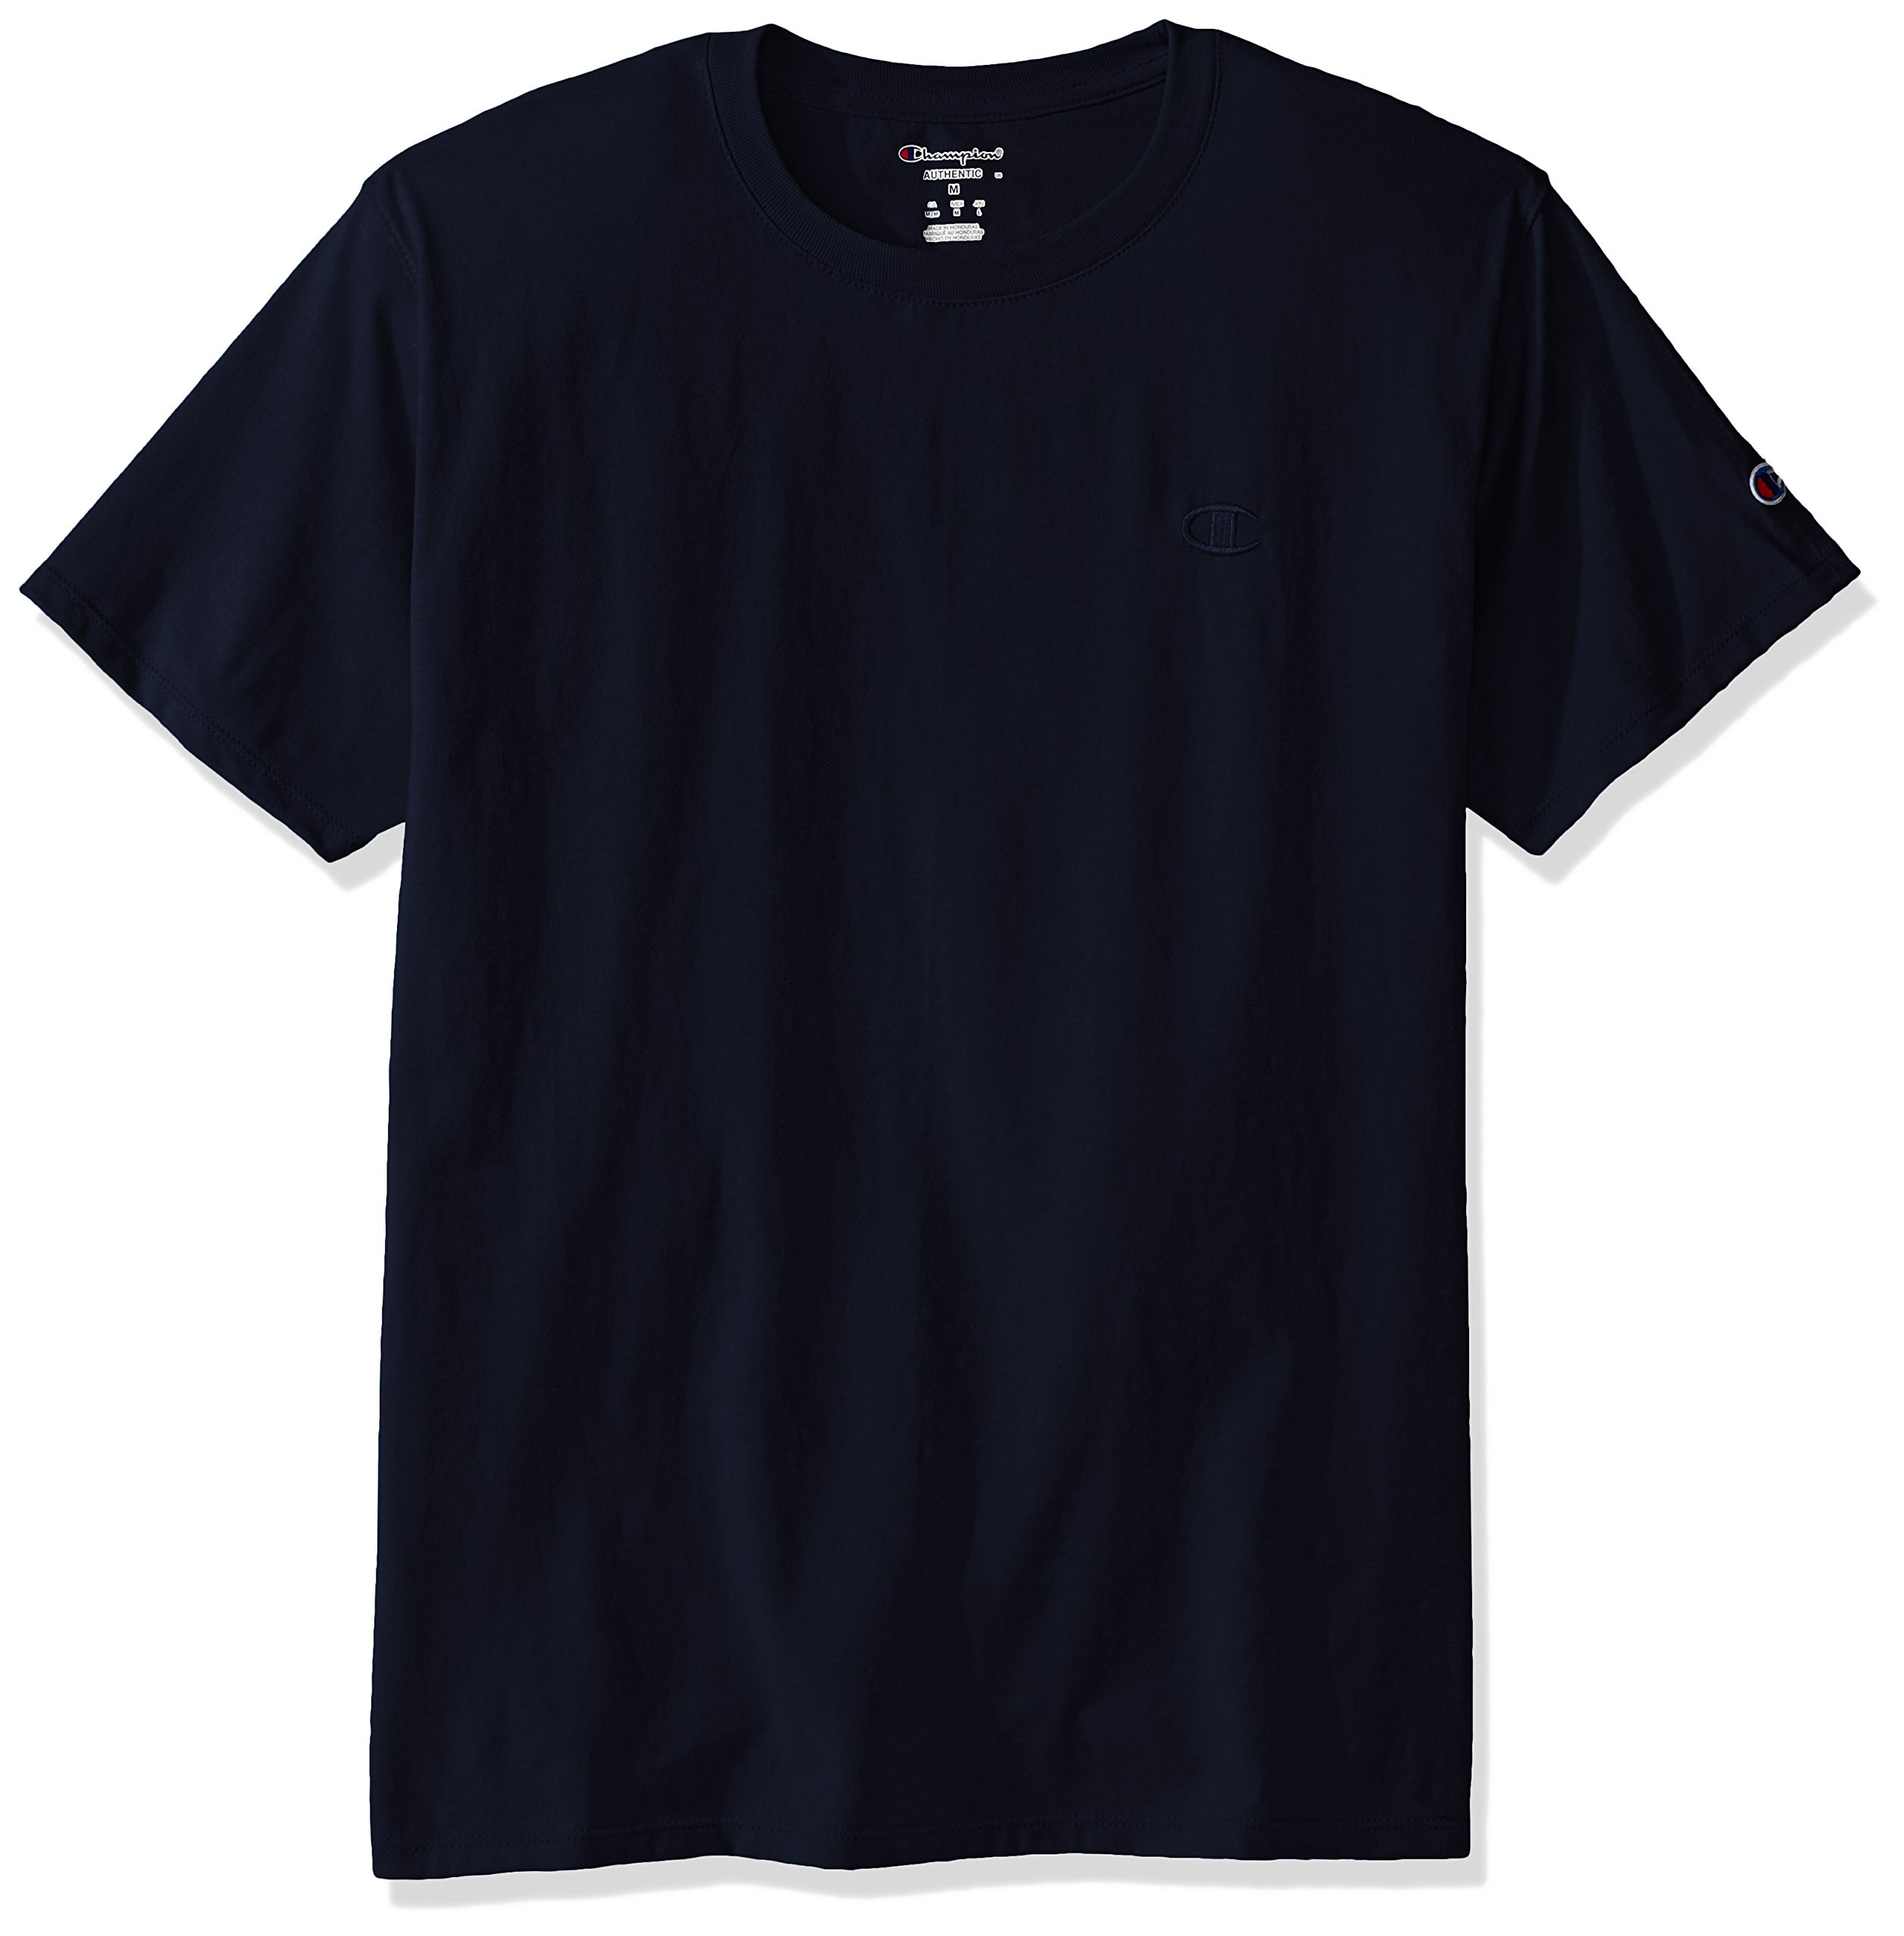 Champion Men's Classic Jersey T-Shirt, Navy, M by Champion